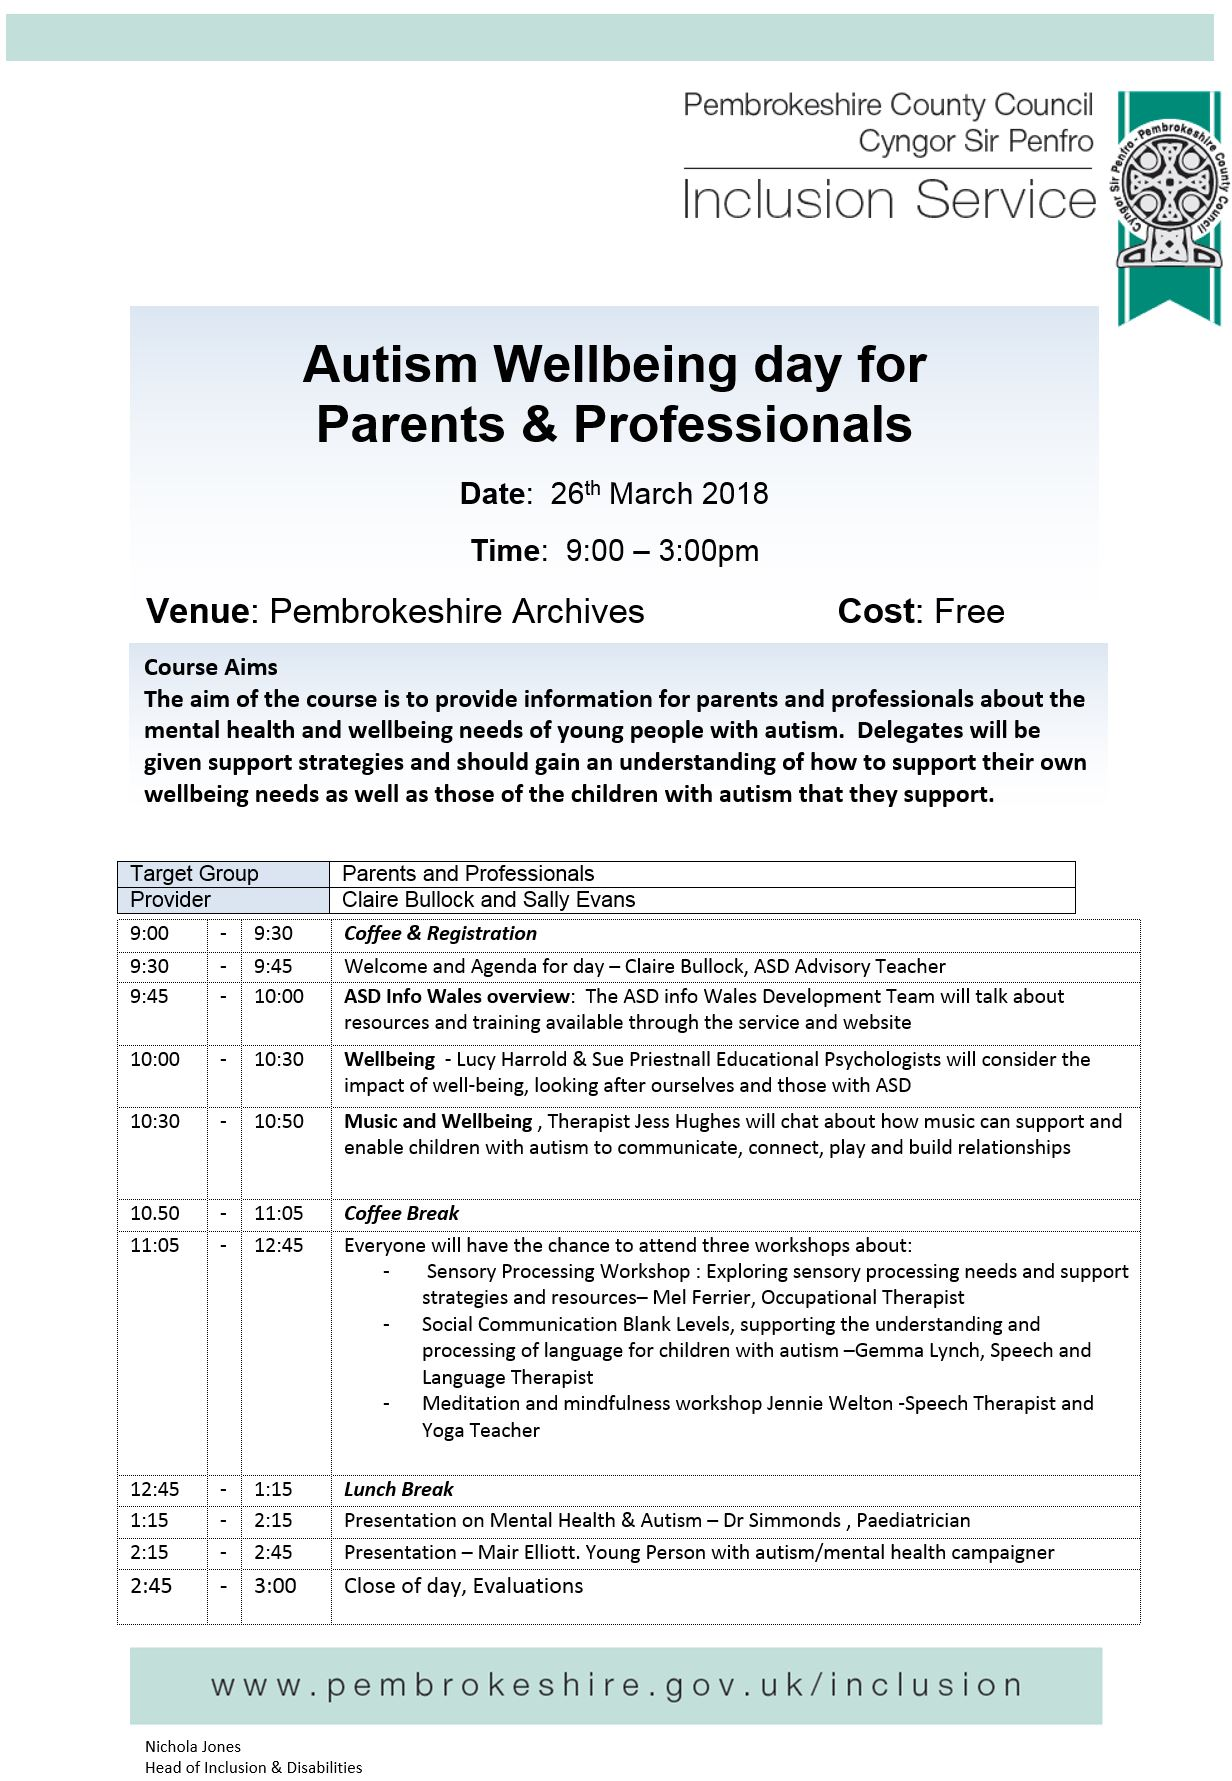 Autism Wellbeing Day For Parents